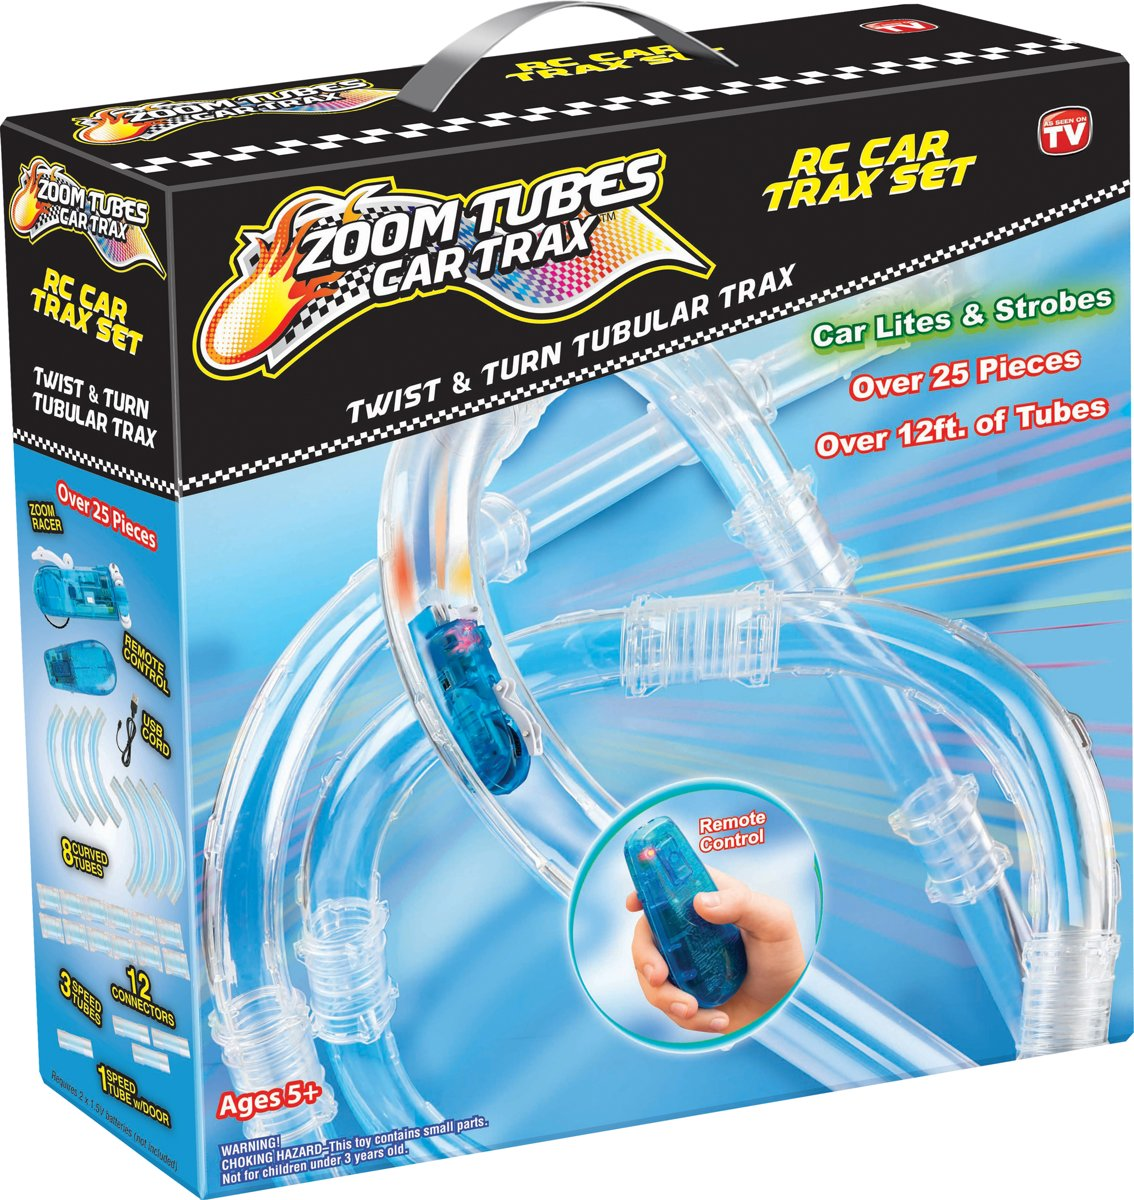 ZOOM TUBE TRAX SET (Best of TV)